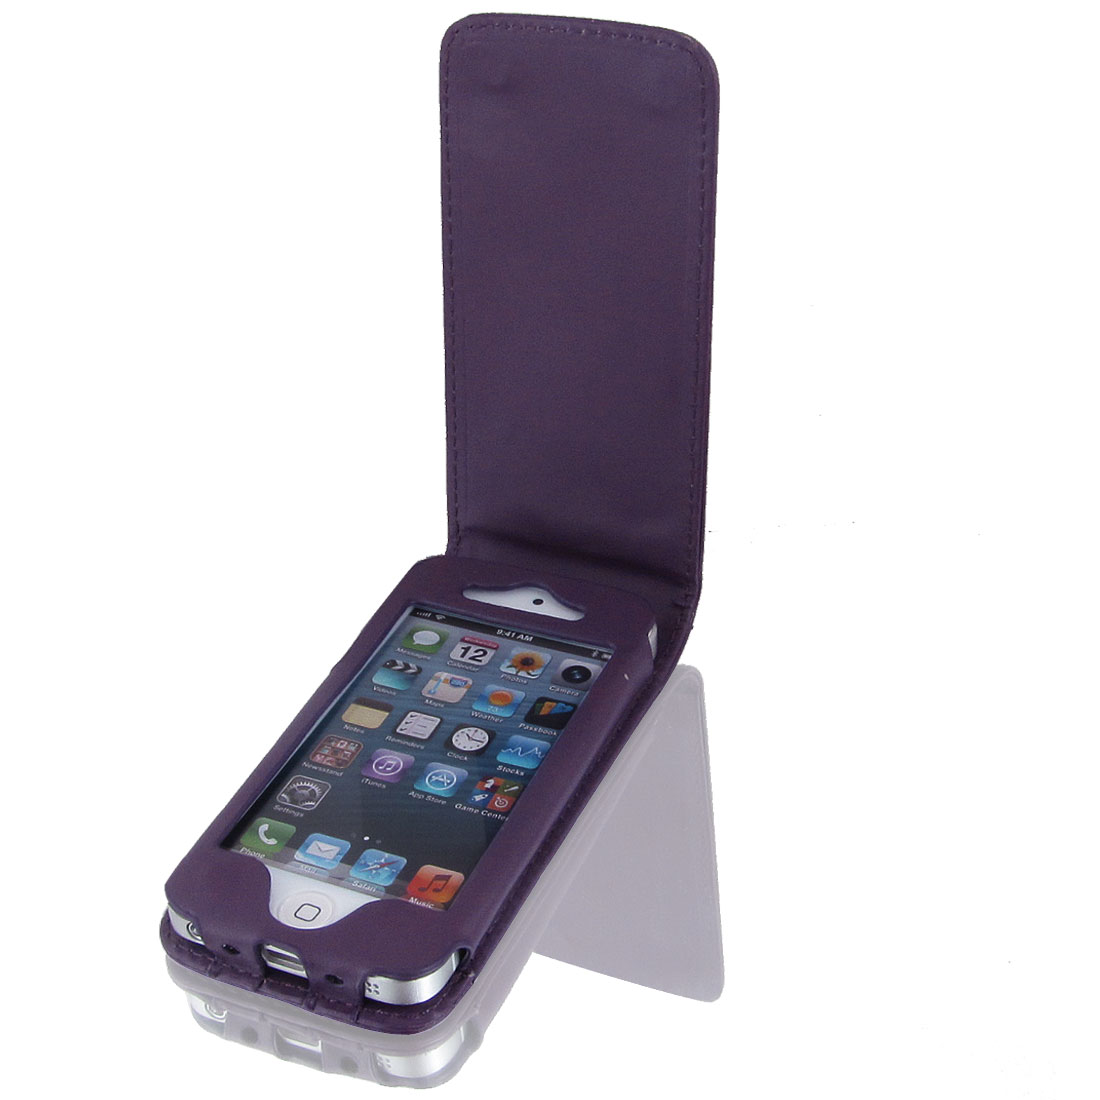 Dark Purple Faux Leather Magnetic Flip Phone Pouch Case Cover for iPhone 5 5G 5th